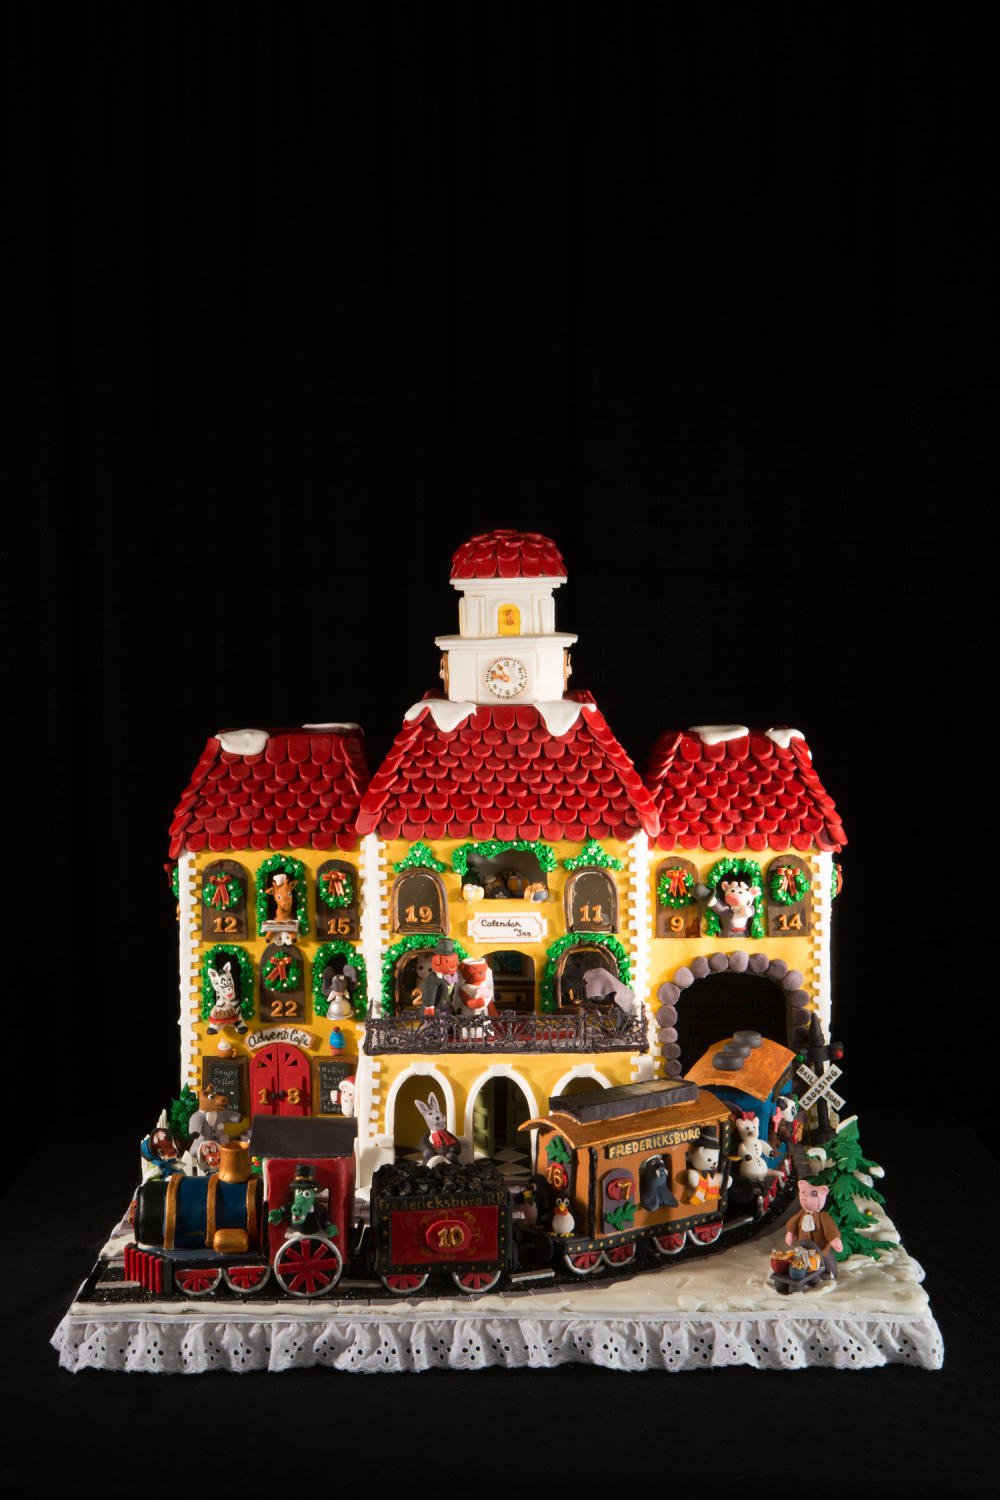 2015 Gingerbread 1st Place Teen Winner